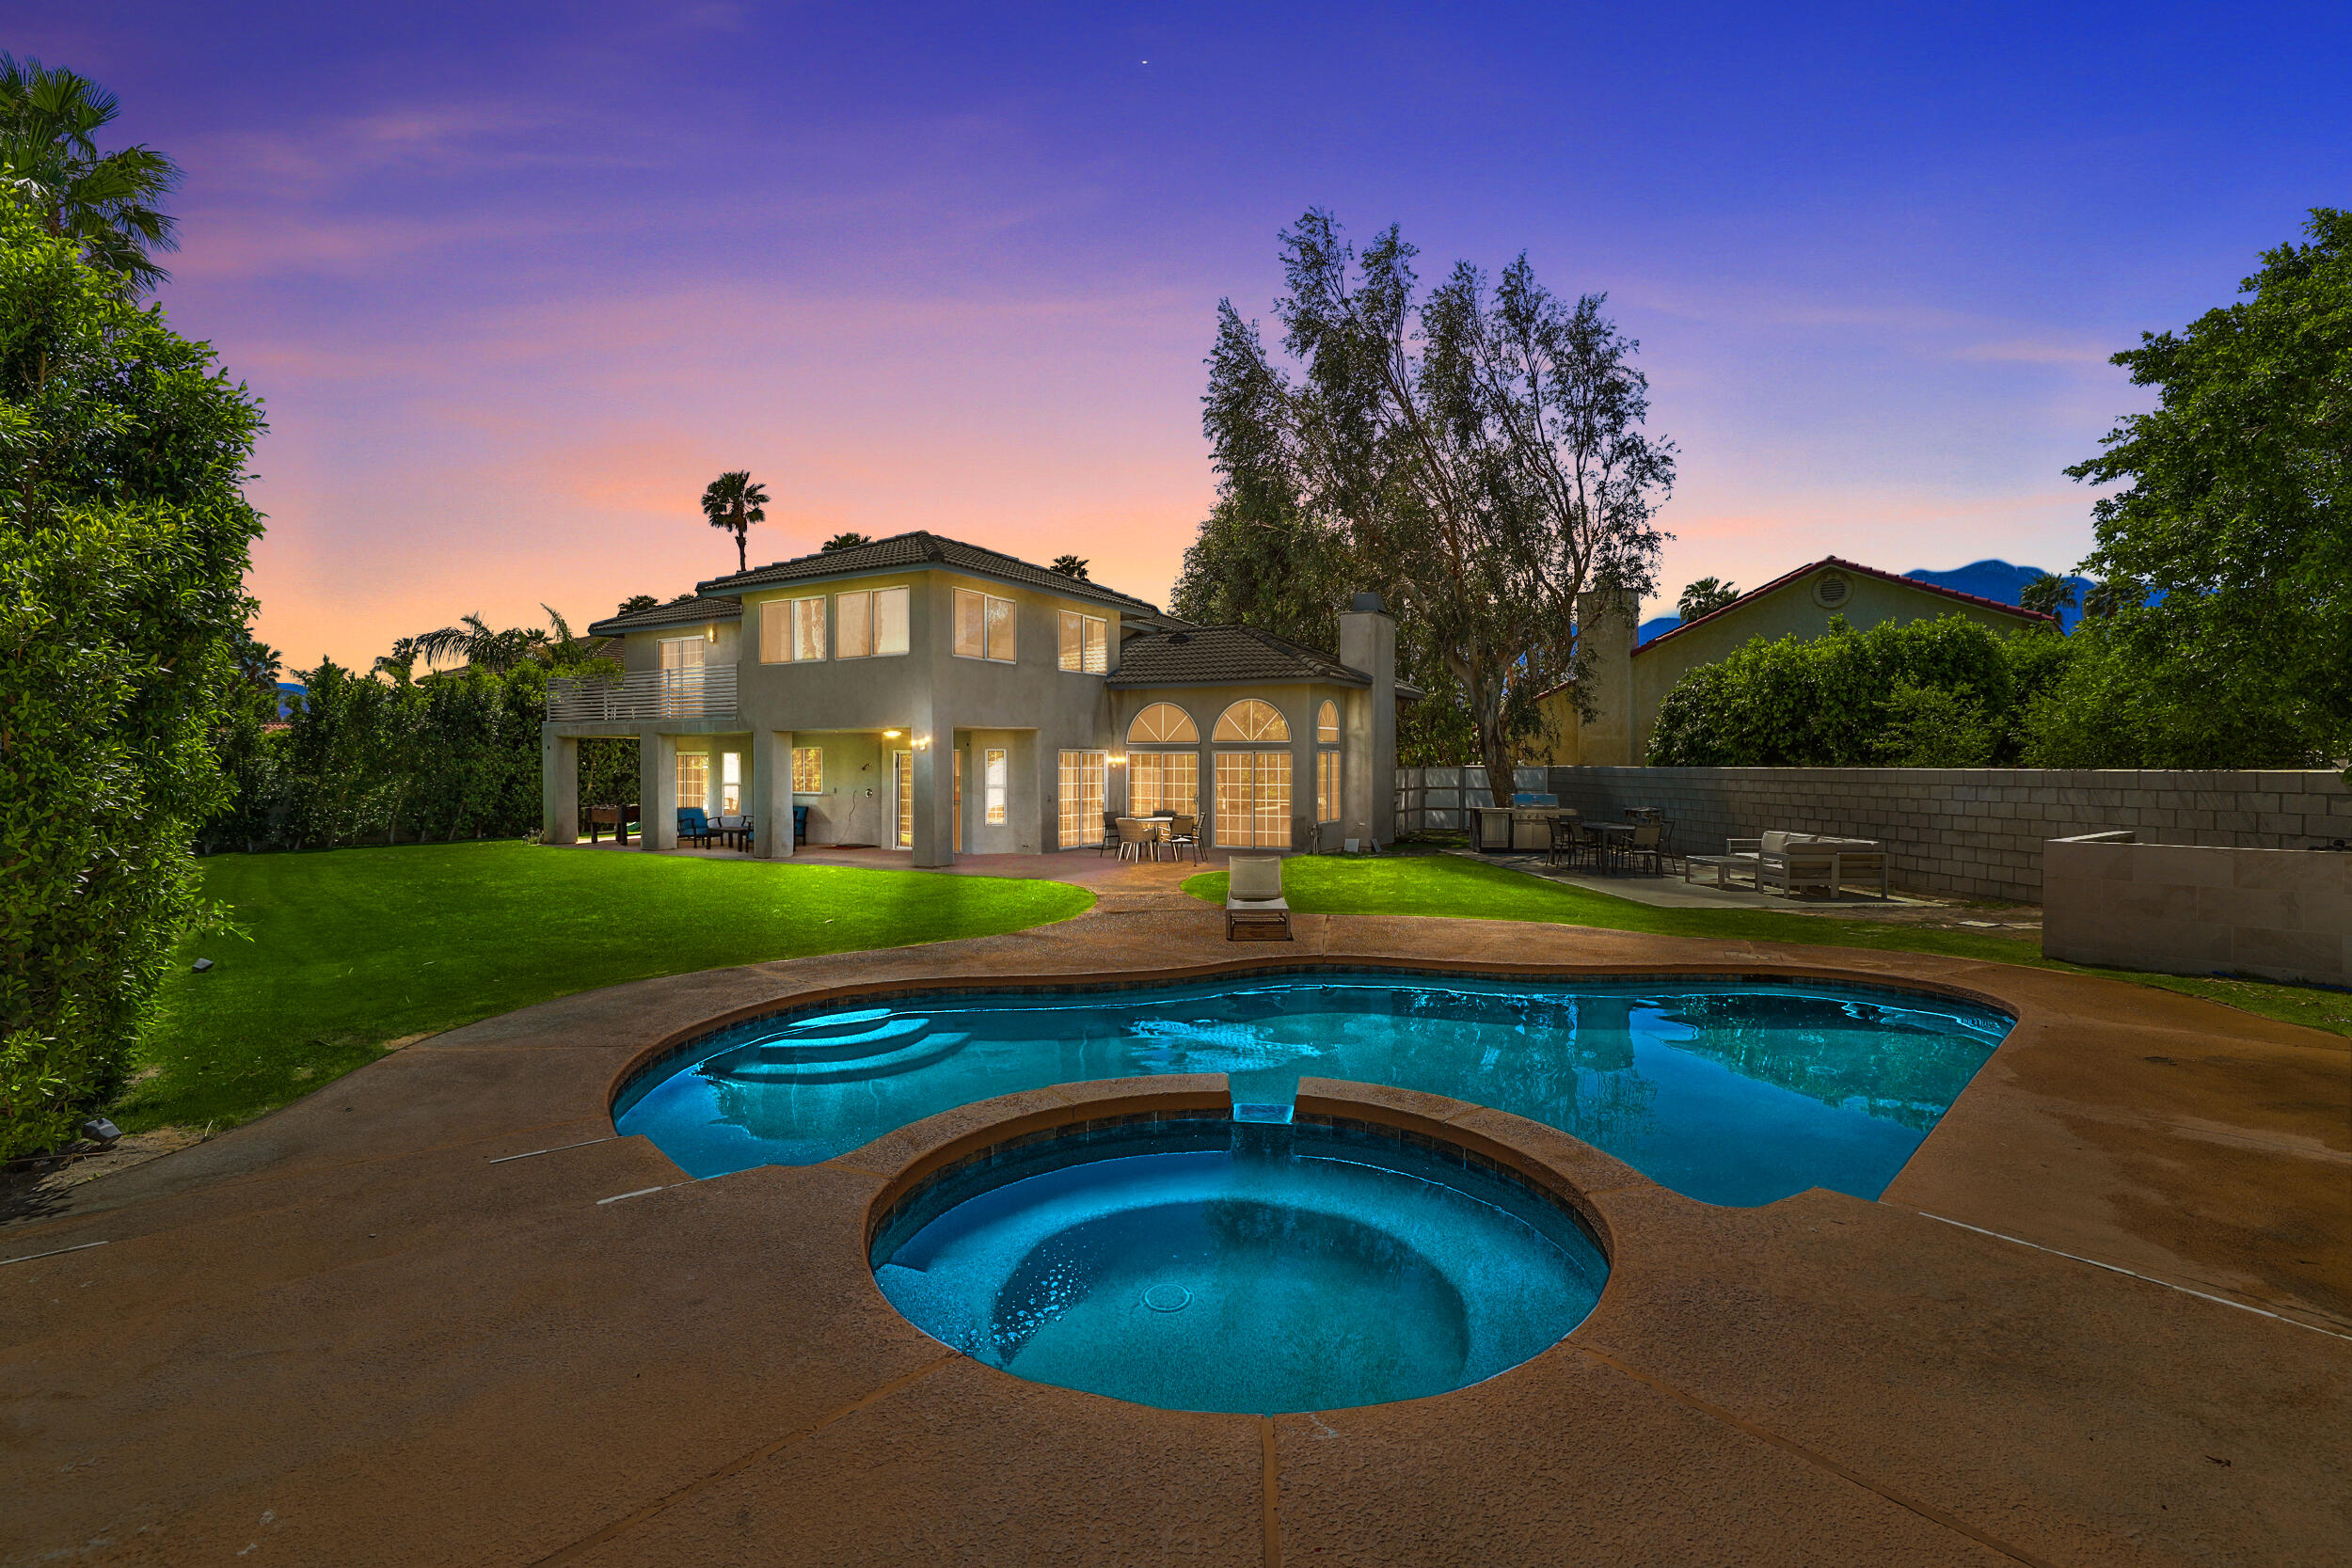 Welcome to one of the biggest homes in the Panorama area. This 5 bedroom, 4 bathroom, 2,868 sq. ft. home on a nearly 12,000 sq. ft. lot has all the room you'll ever need and was completely remodeled within the last 5 years. Including adding a bedroom and bathroom as well as a full kitchen update. Your new home is situated on an extremely quiet cul-de-sac with only three other homes. There's an extra-large 3 car garage with built-in cabinets. The drive-way can accommodate an RV or trailer and still have room for extra vehicles. Open floor plan with a fireplace and 14 ft. ceilings in the spacious living room. Entertaining flows easily through any of the five sliders that lead to the large backyard with beautiful pebble-tec, saltwater pool.